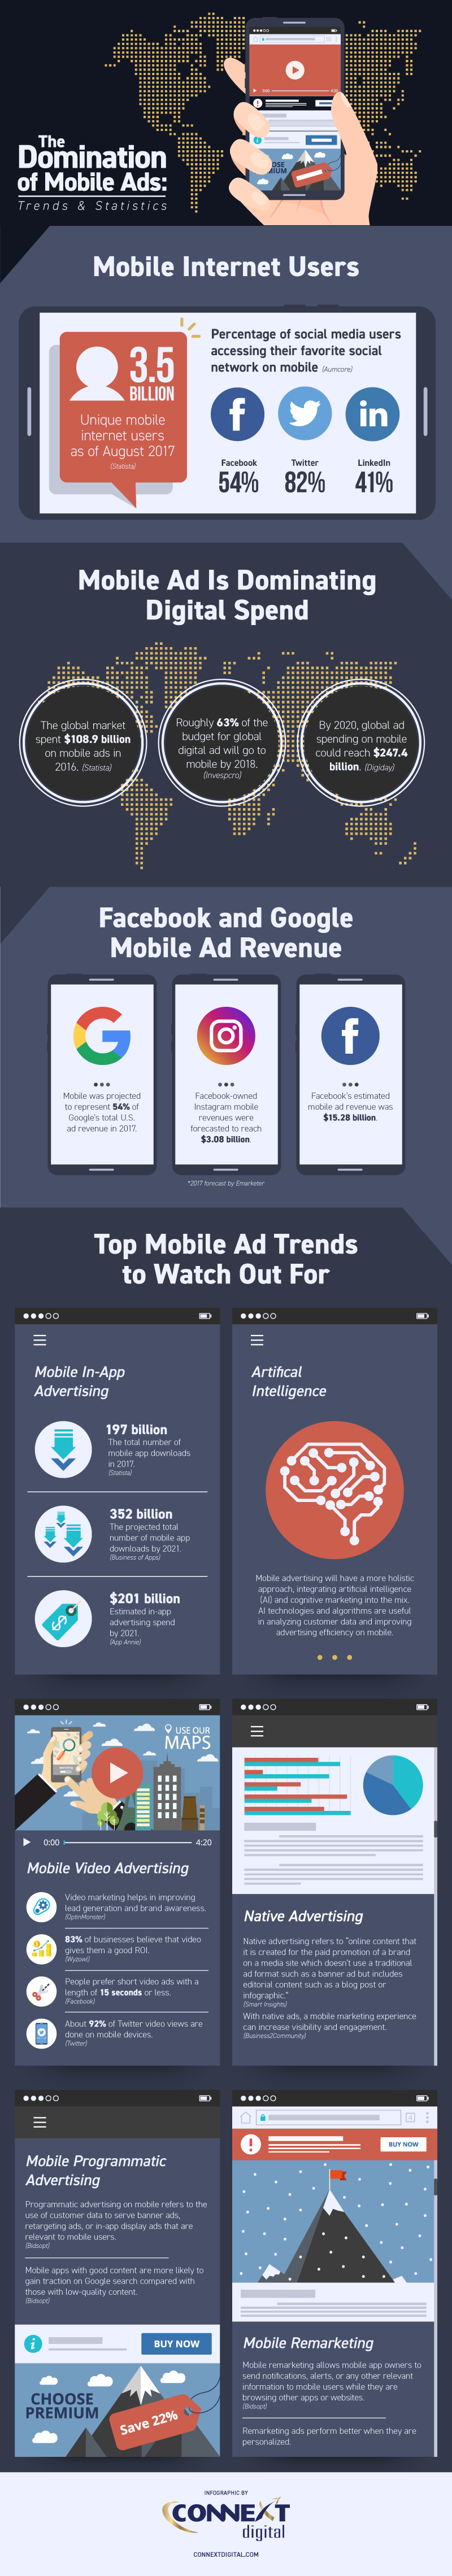 Why Mobile Ads Rule: Statistics and Trends - Infographic